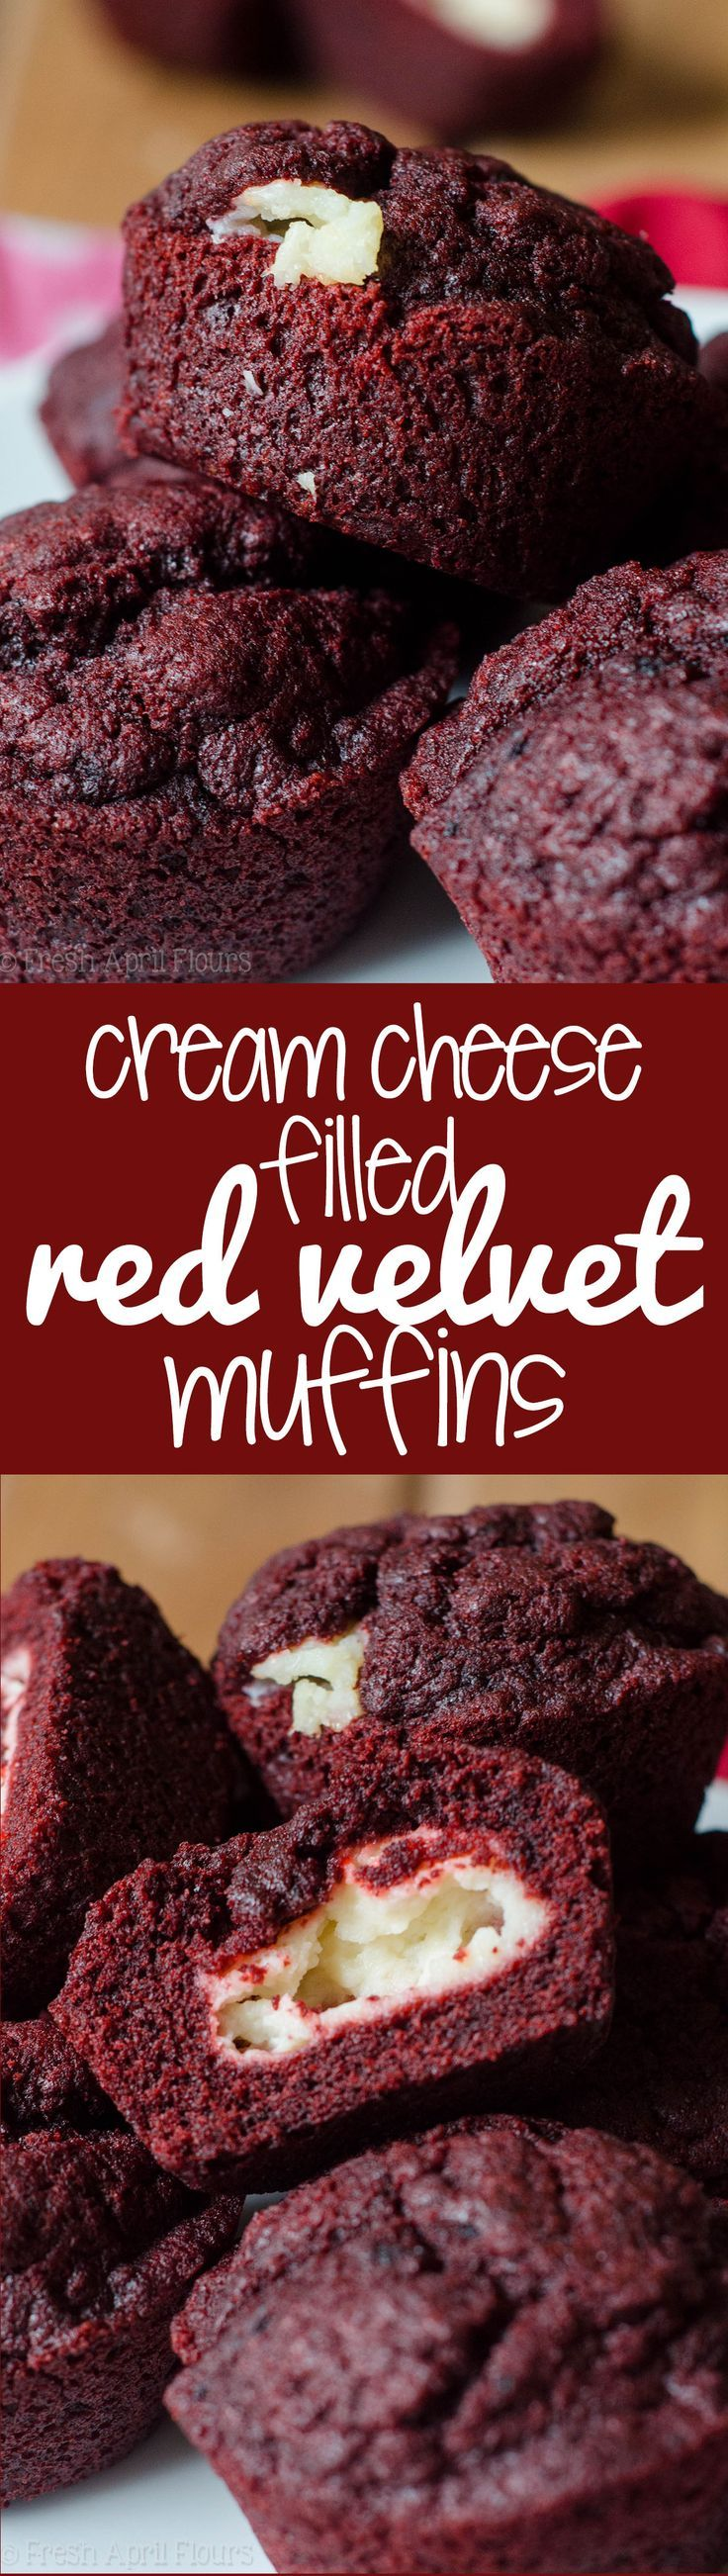 Cream Cheese Filled Red Velvet Muffins